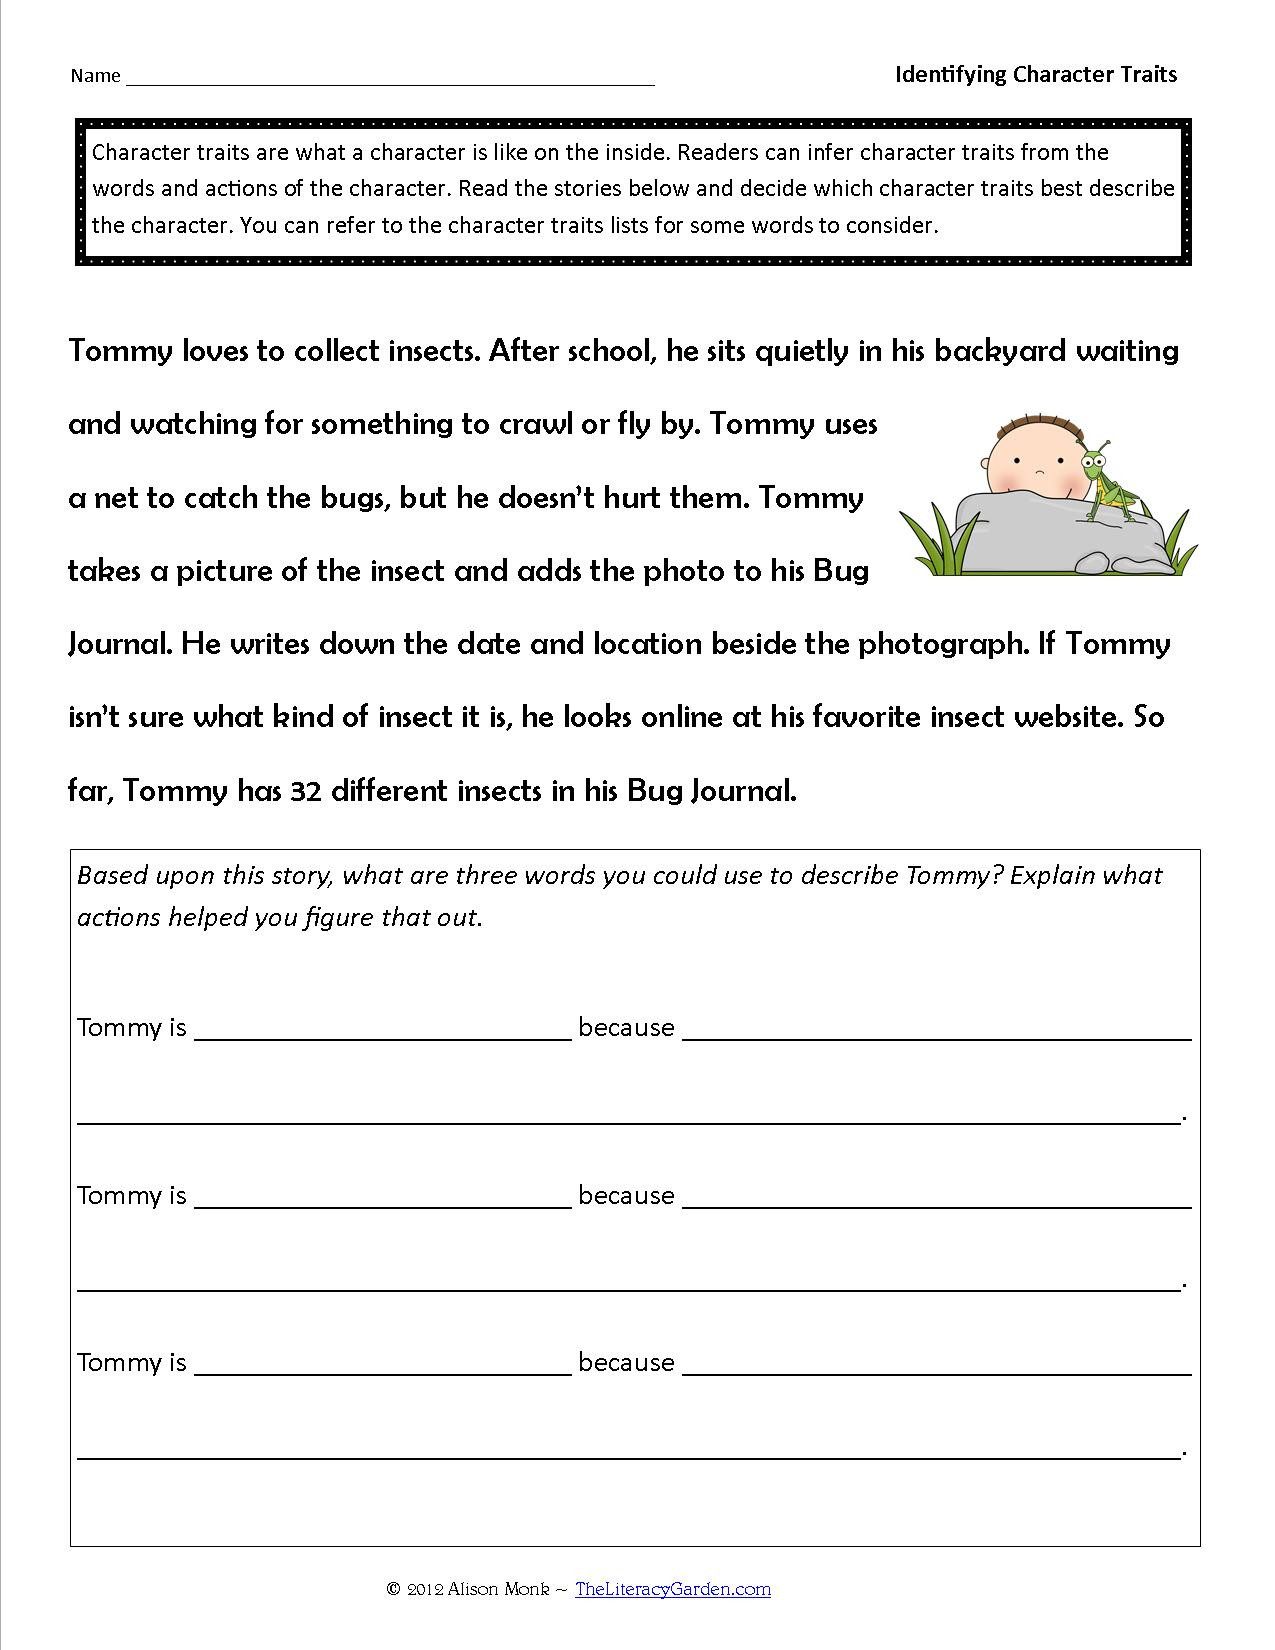 Character Traits Worksheet 2nd Grade Identifying Character Traits In Literature